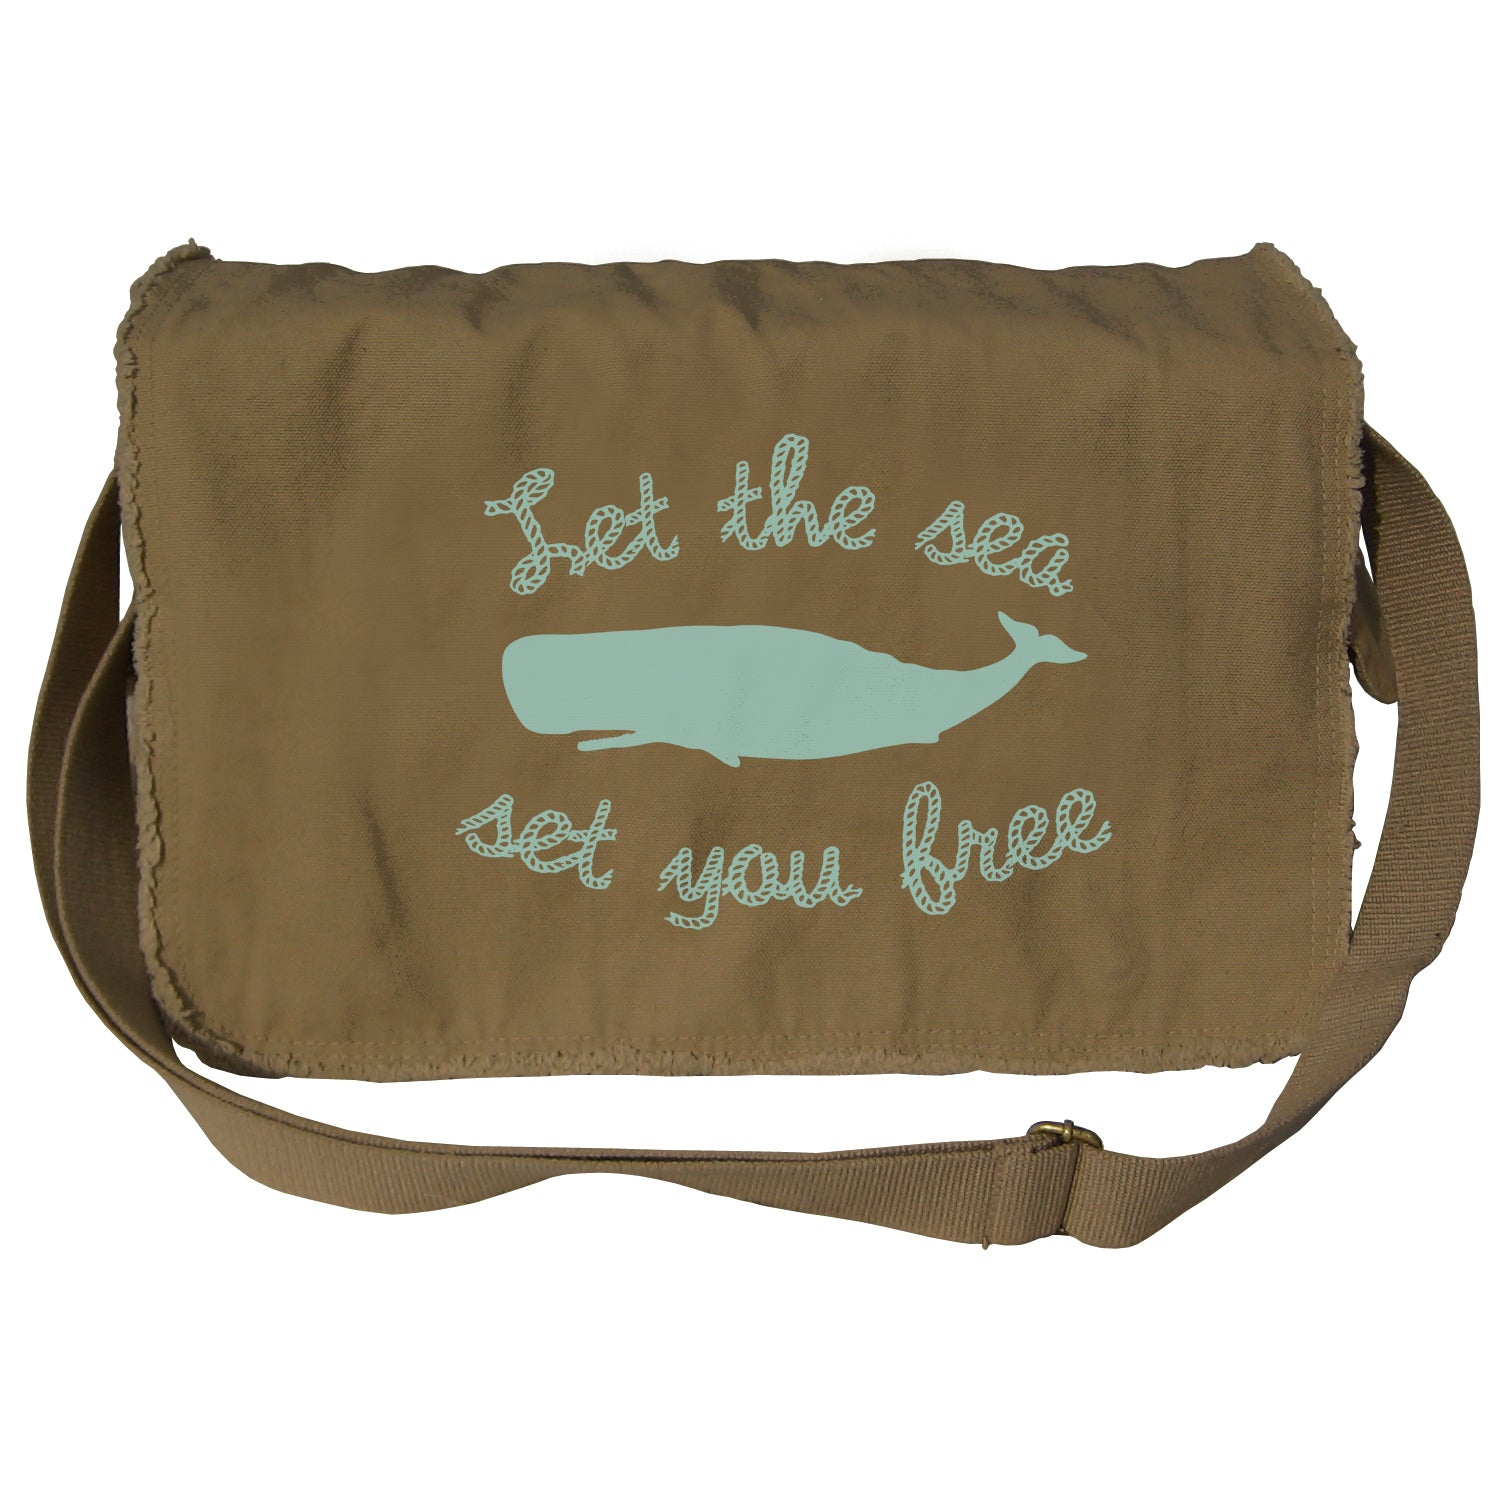 Let The Sea Set You Free Messenger Bag